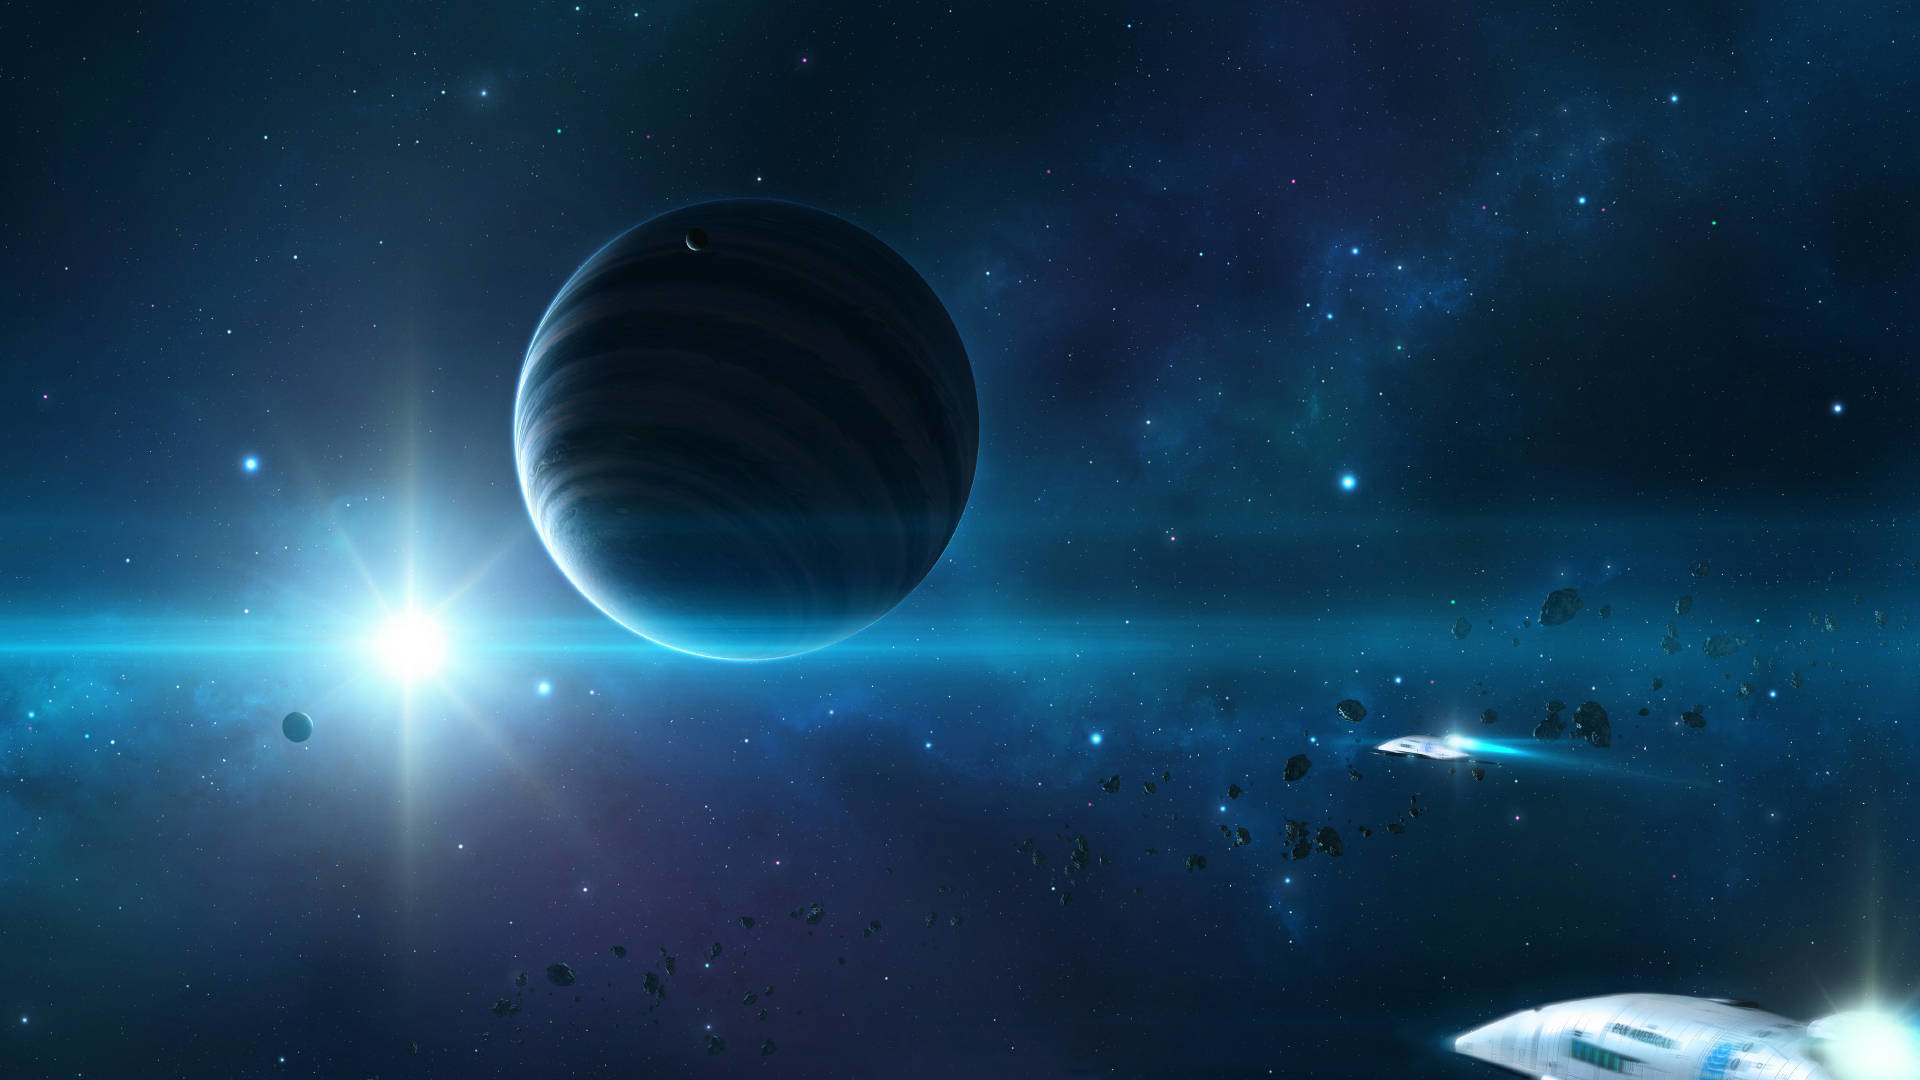 Real Space Backgrounds 1920x1080